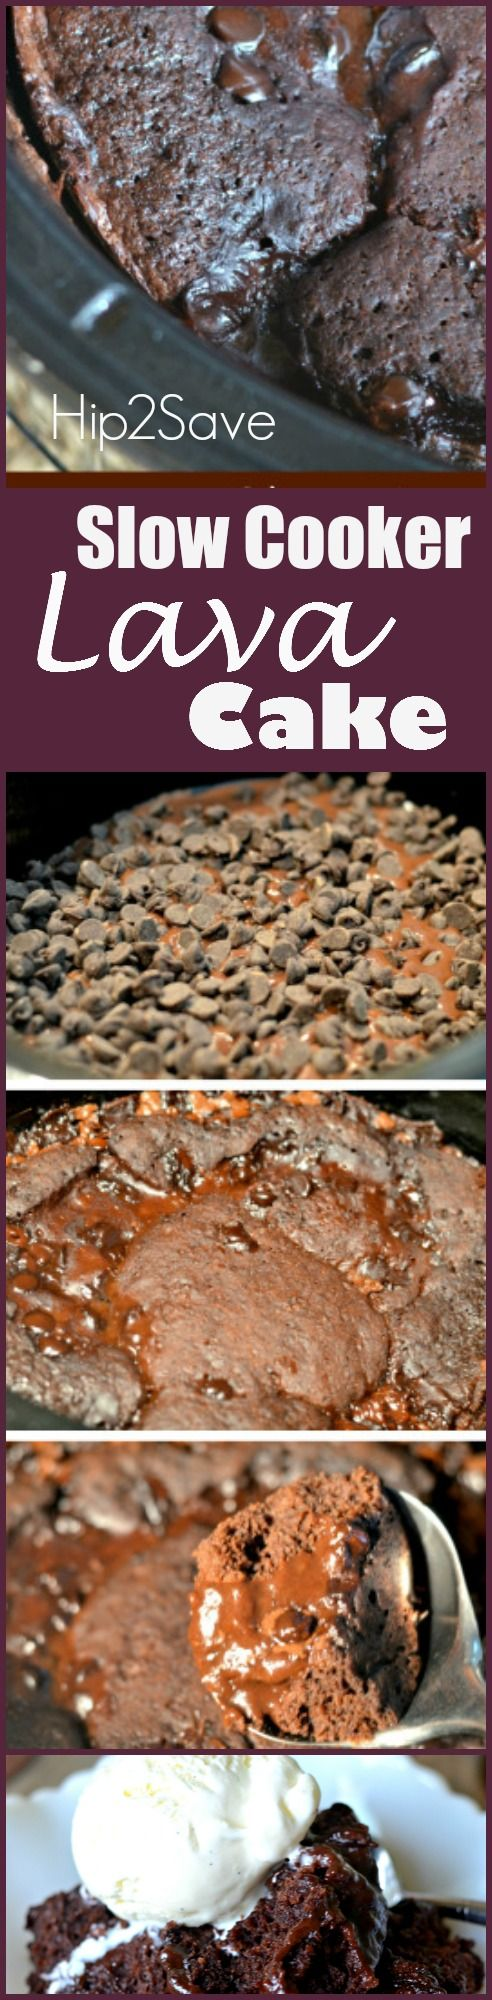 Slow cooker lava cake recipe that oozes with chocolately goodness. Once it's done, it's hot and gooey. You will receive wonderful compliments when you make this for your guests at your next party.